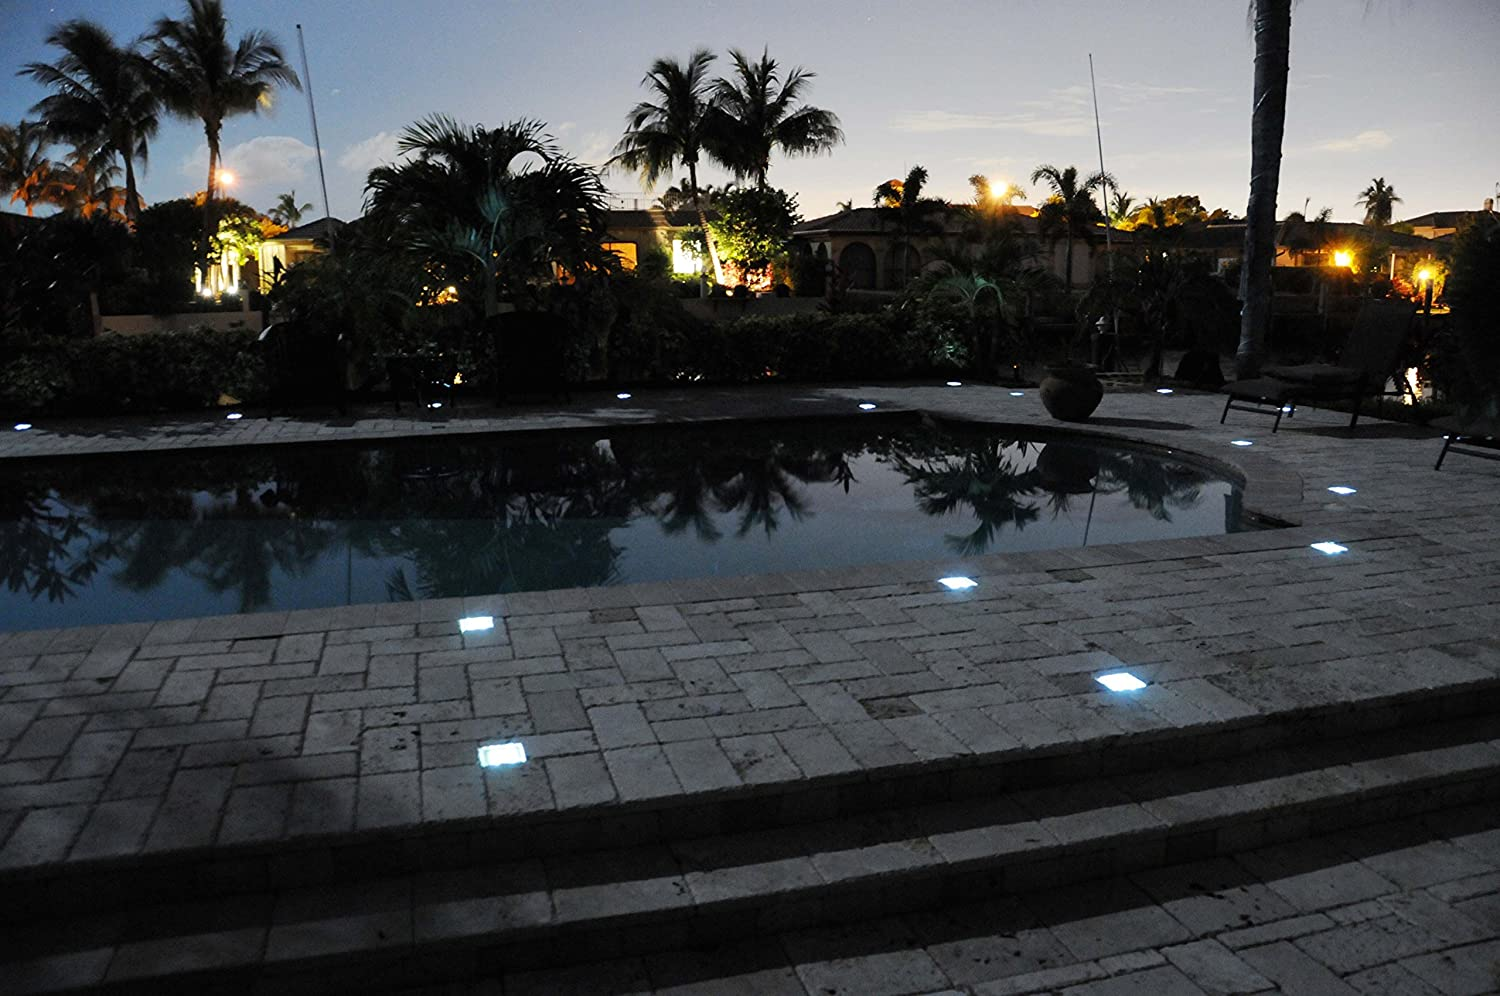 Amazon paver light depot 4x8 solar led paver lights solar amazon paver light depot 4x8 solar led paver lights solar powered led walkway light 6 ultra bright elegant led lights automatic light sensor mozeypictures Image collections